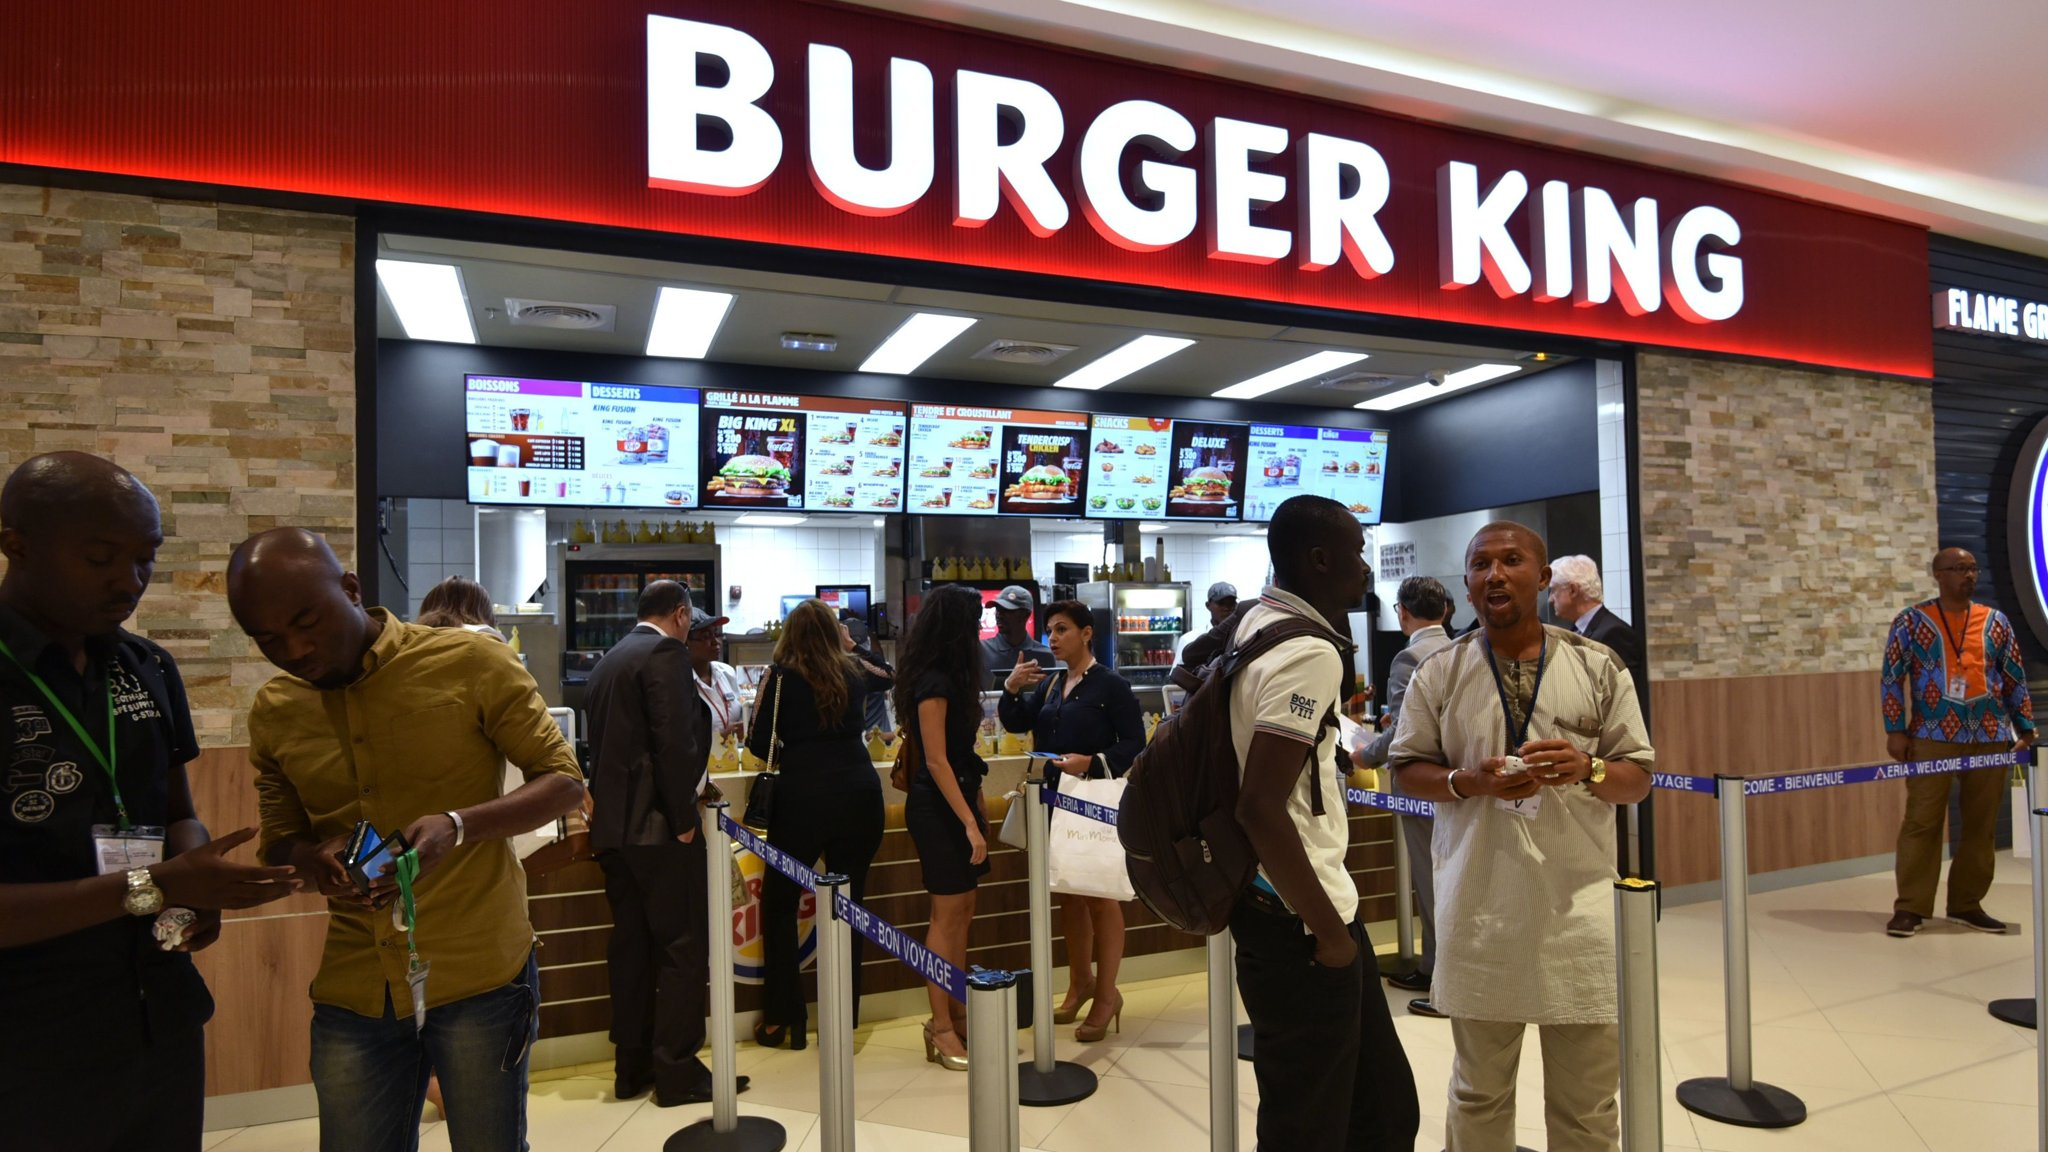 Burger King looks to expand in sub-Saharan Africa | Financial Times